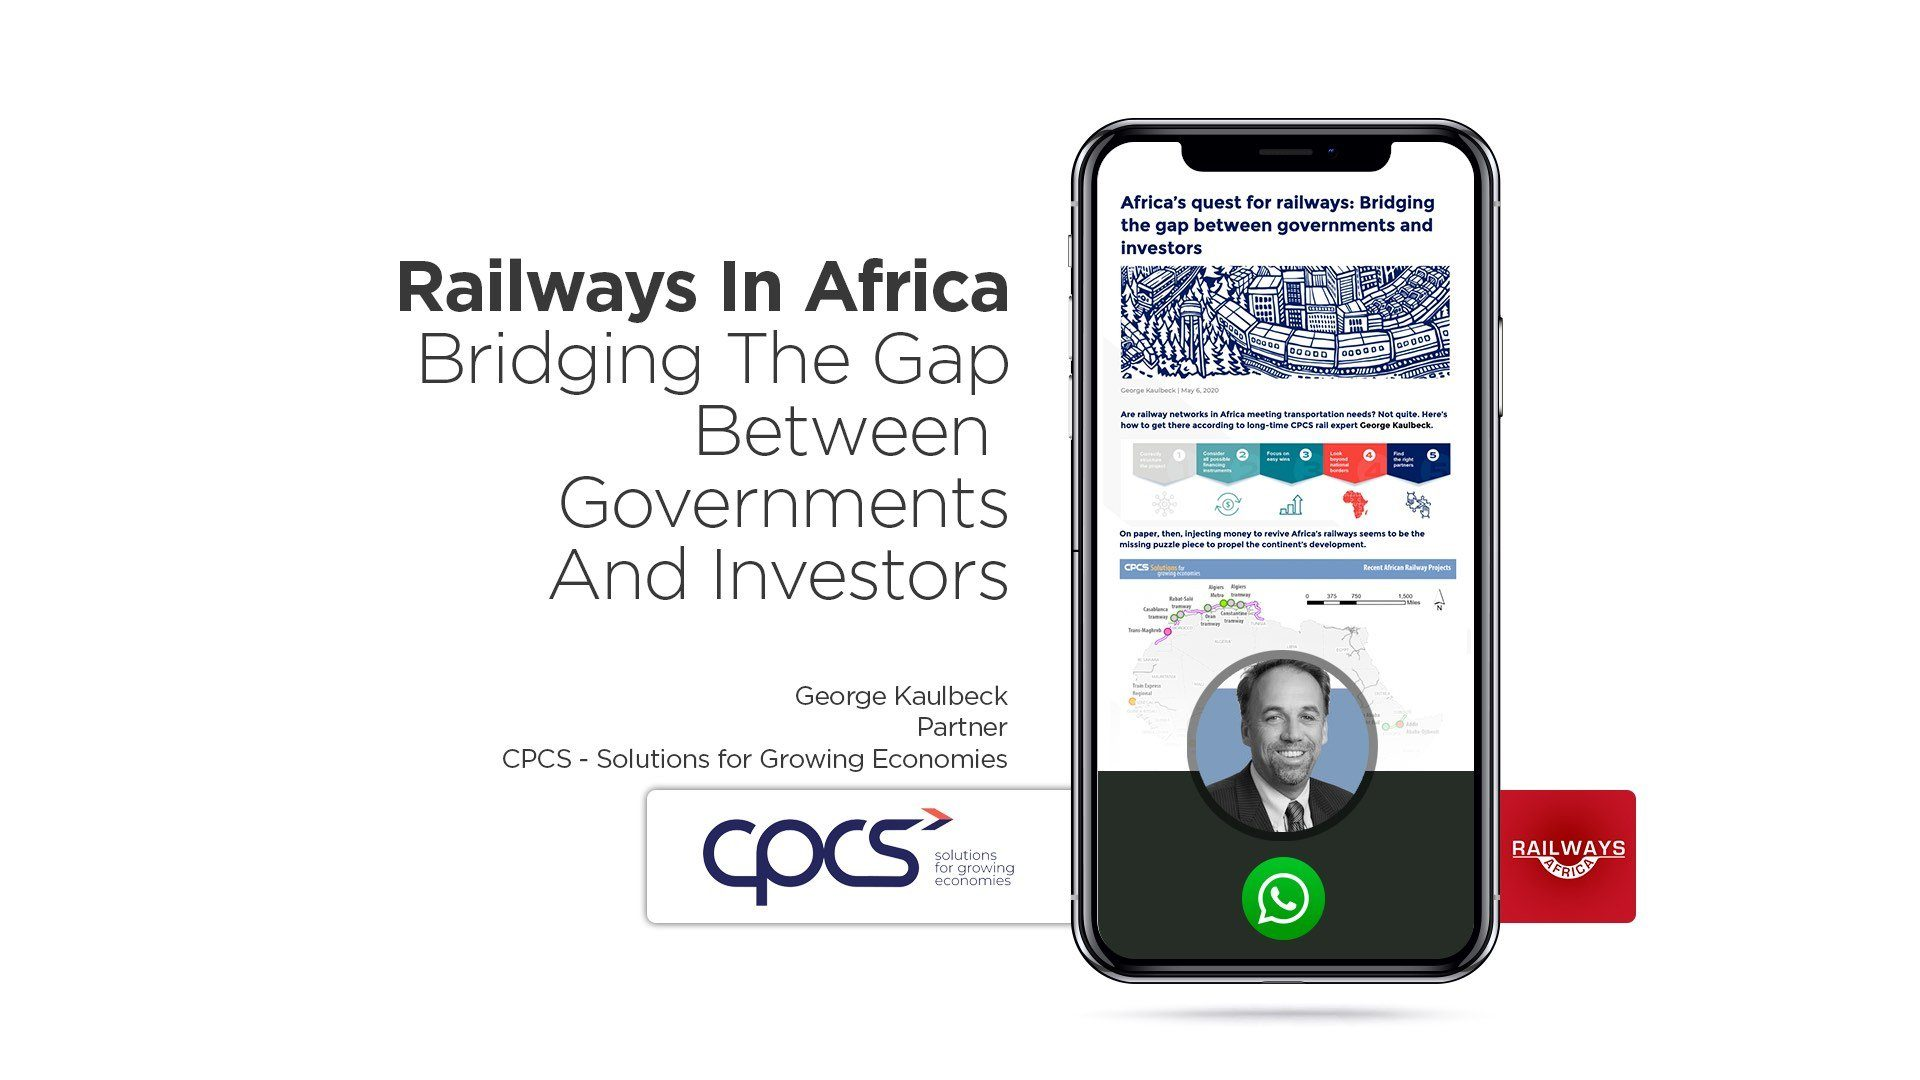 Railways In Africa – Bridging The Gap Between Governments And Investors